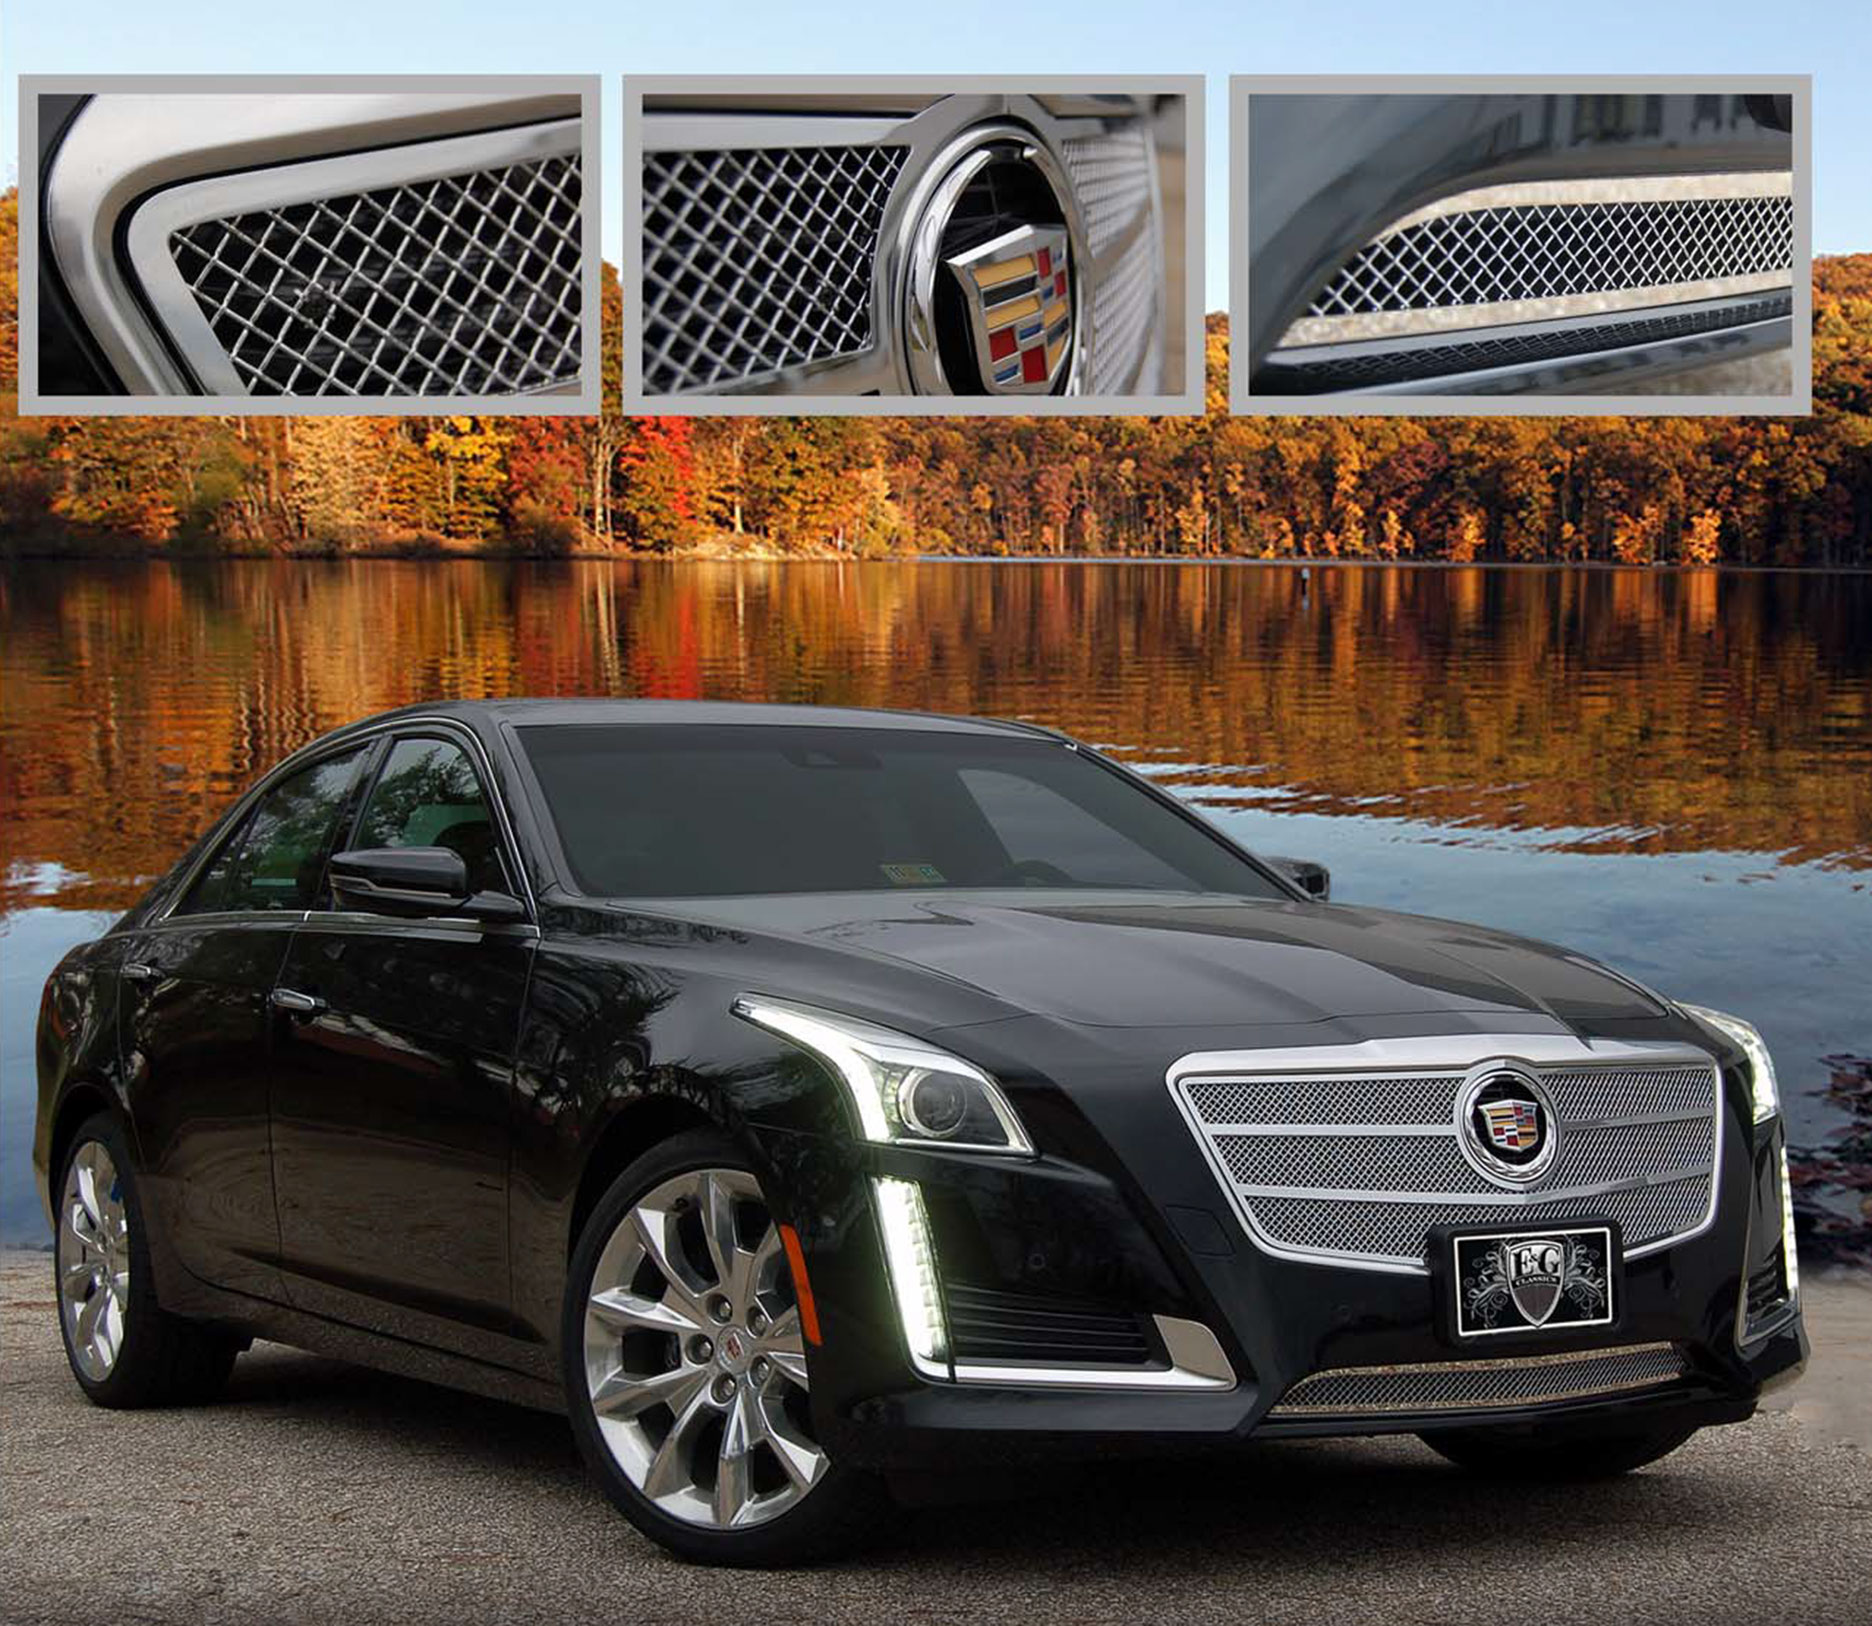 E&G Classics Cadillac CTS Grille Wing Body Kit Wheel